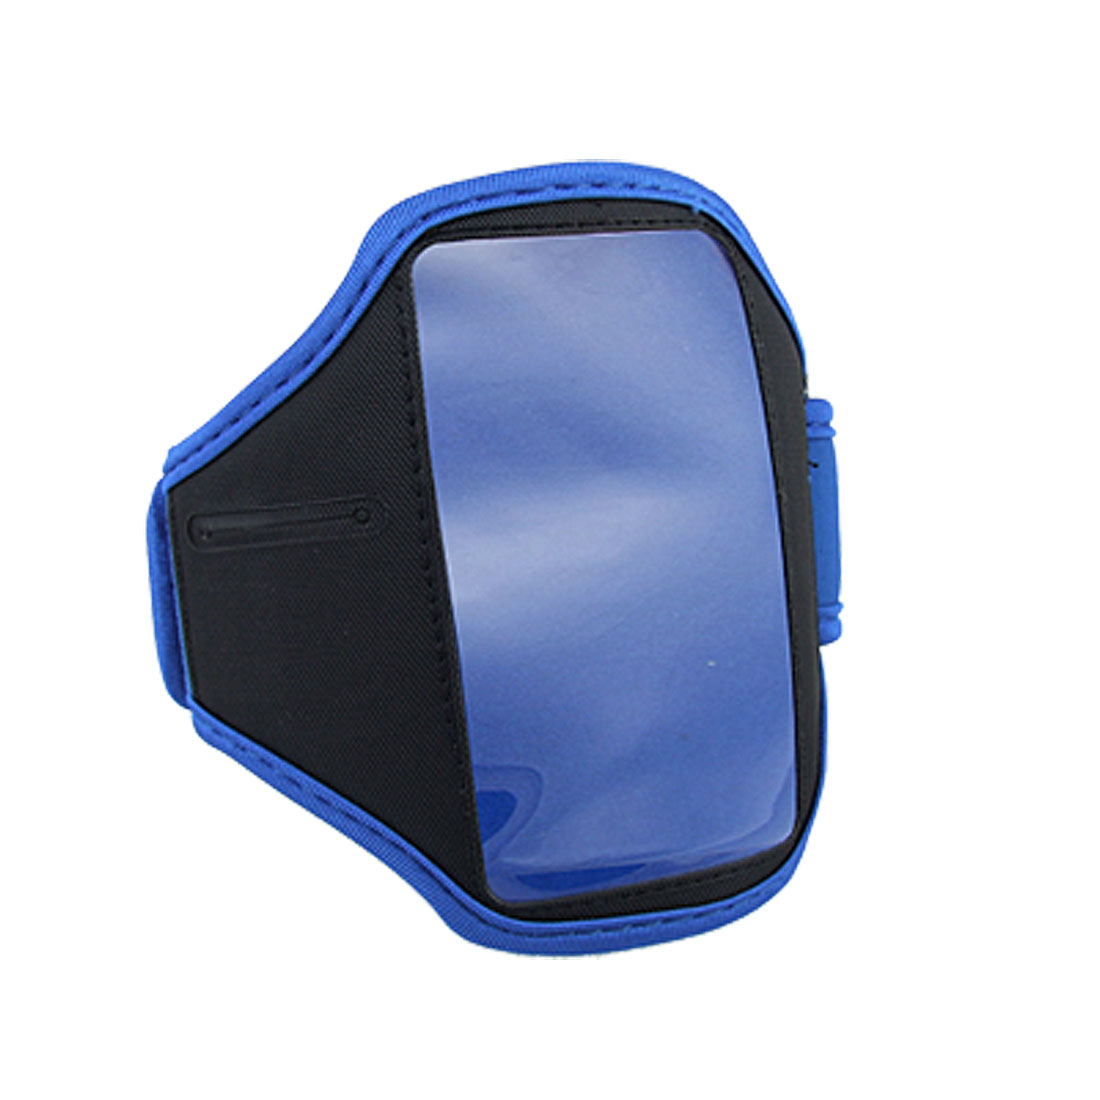 Black Blue Sports Neoprene Armband Cover for iPod Touch 4G